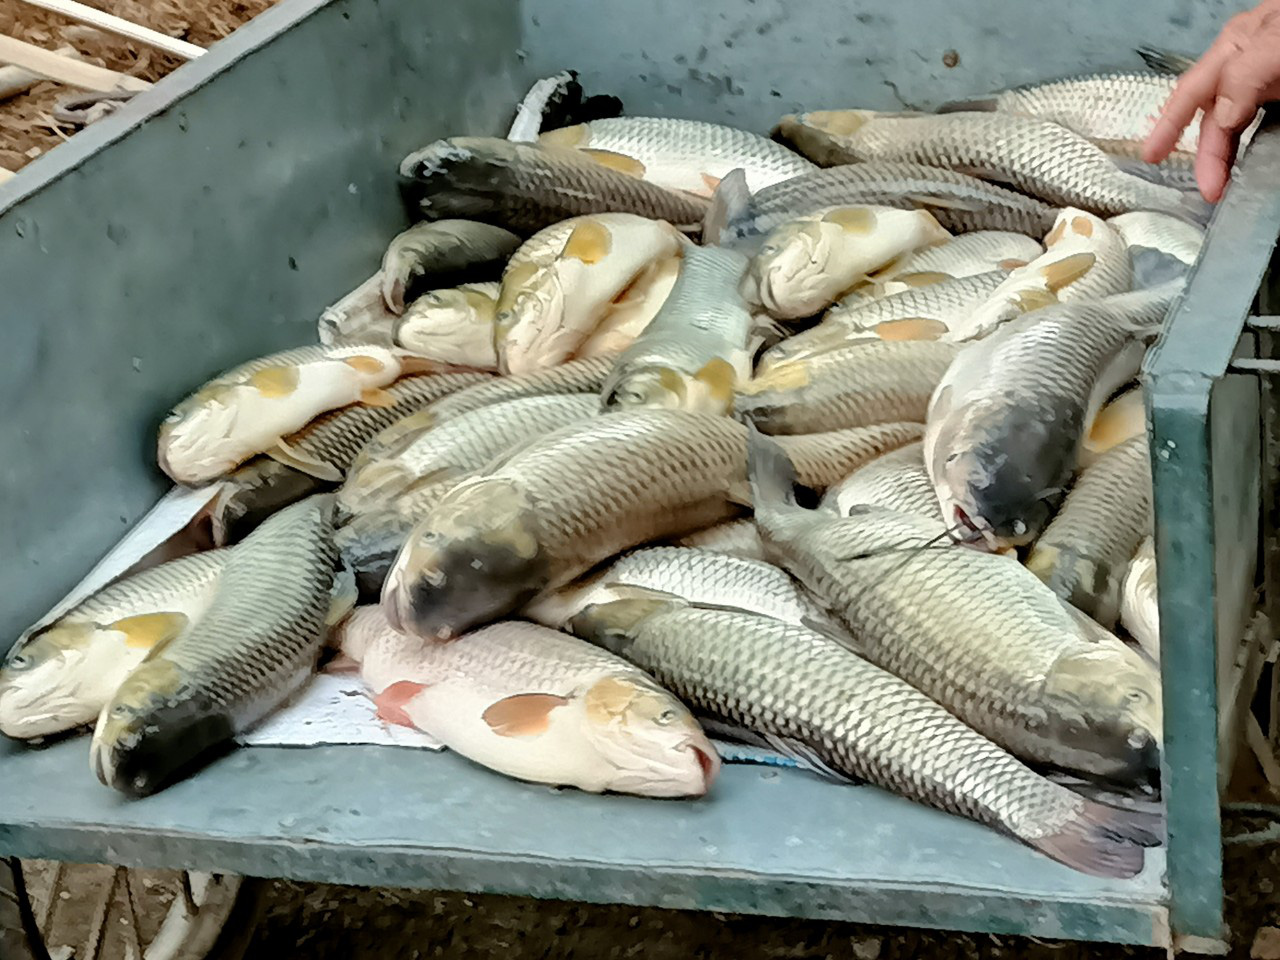 14 tonnes of farm-raised fish die within one day in north-central Vietnam